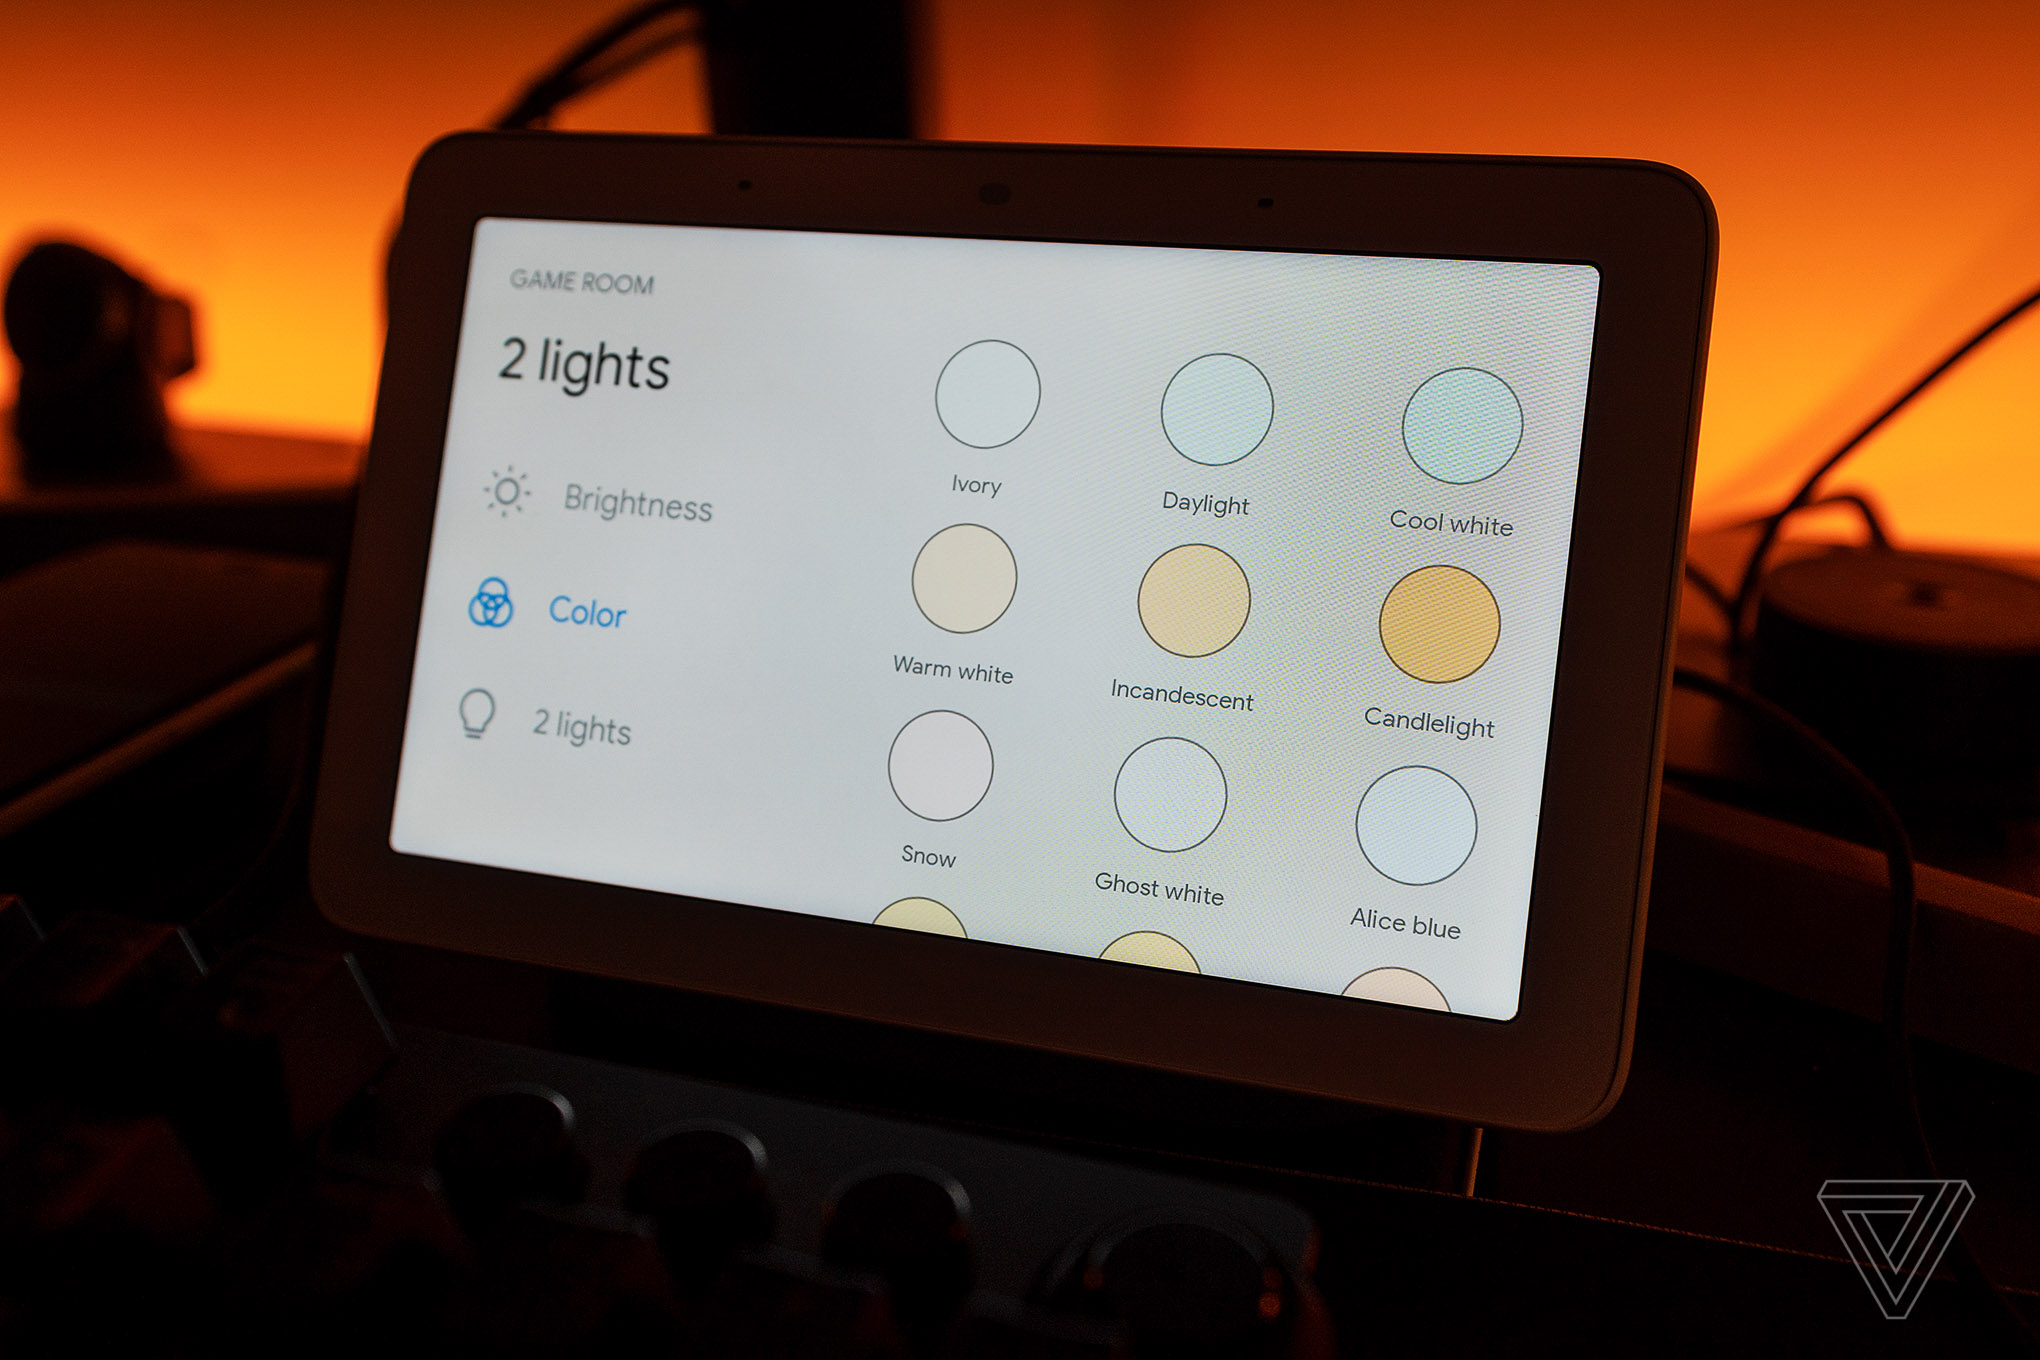 How to control your Philips Hue lights with the Google Home app